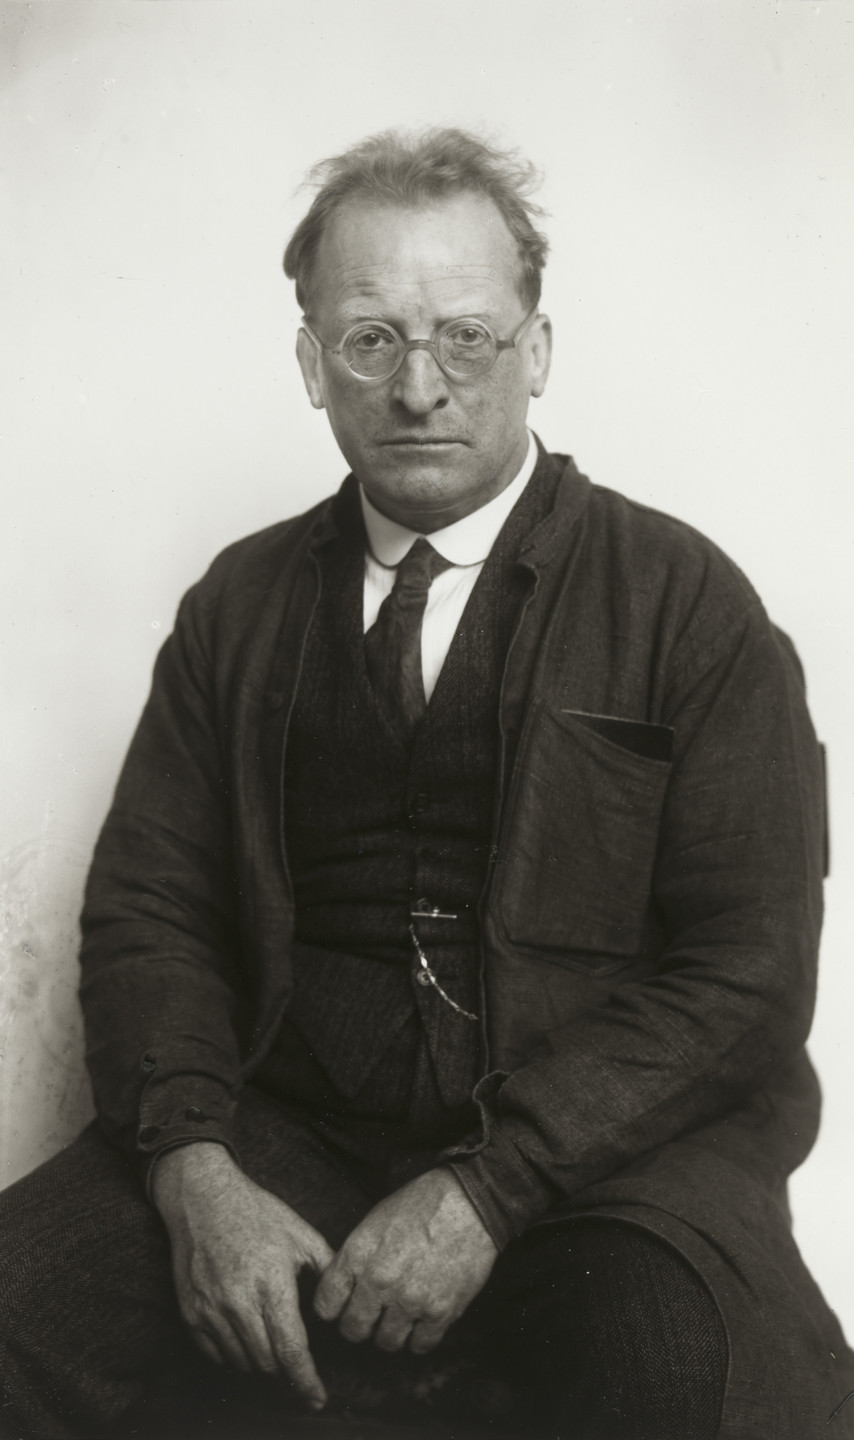 August Sander. Architect [Richard Riemerschmid]. 1930